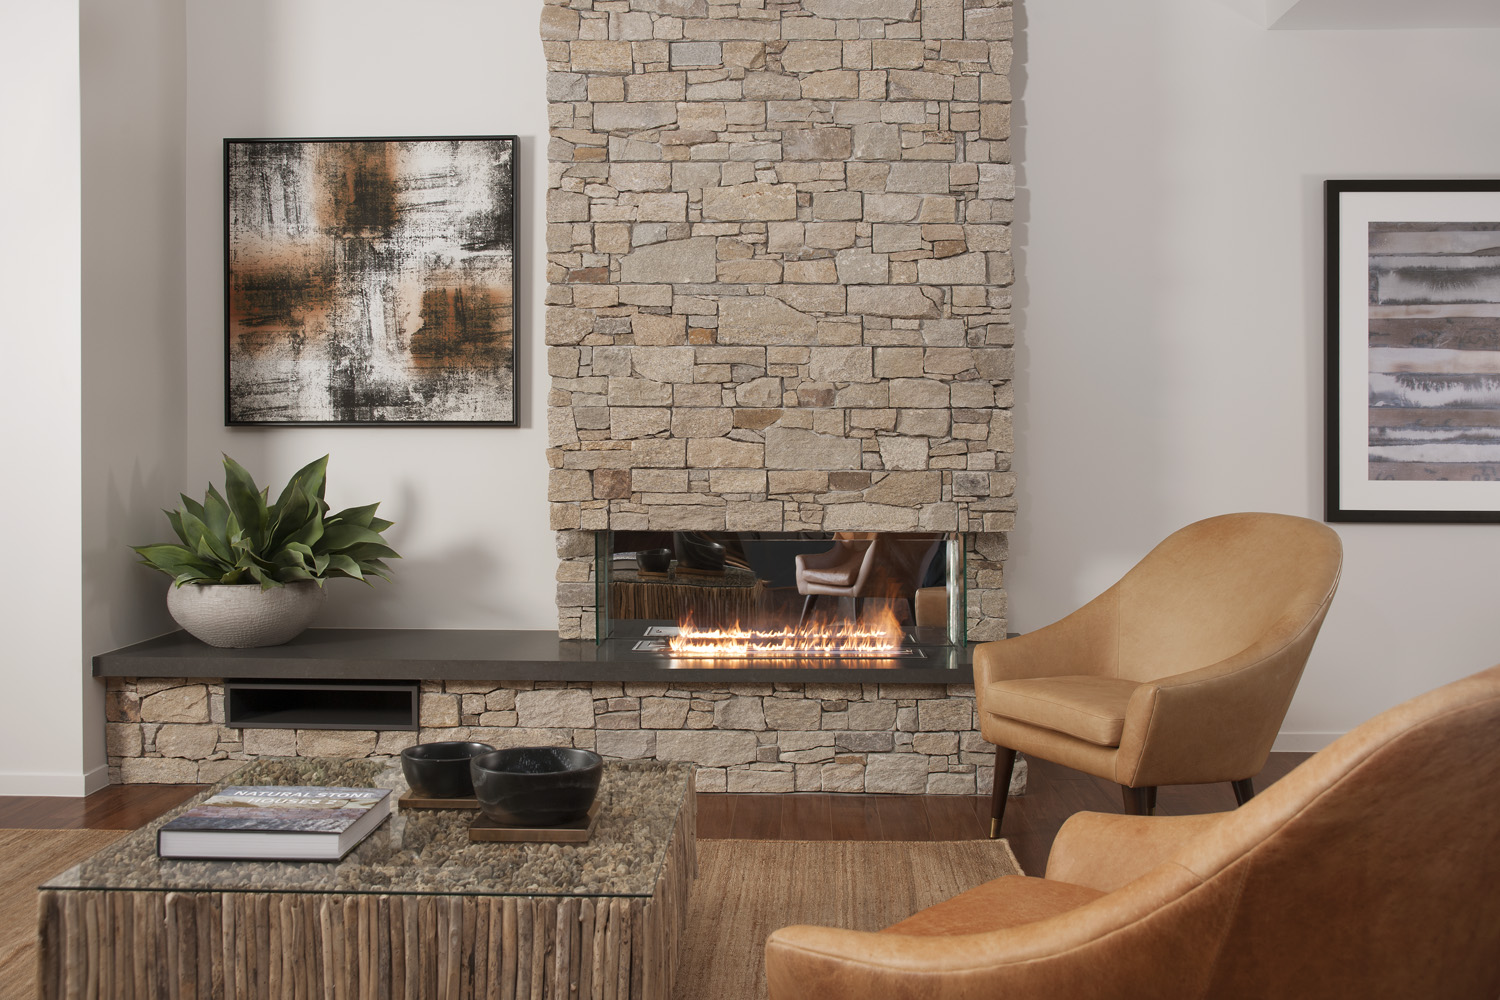 Relaxing space with fireplace inside the eco-friendly home (1)